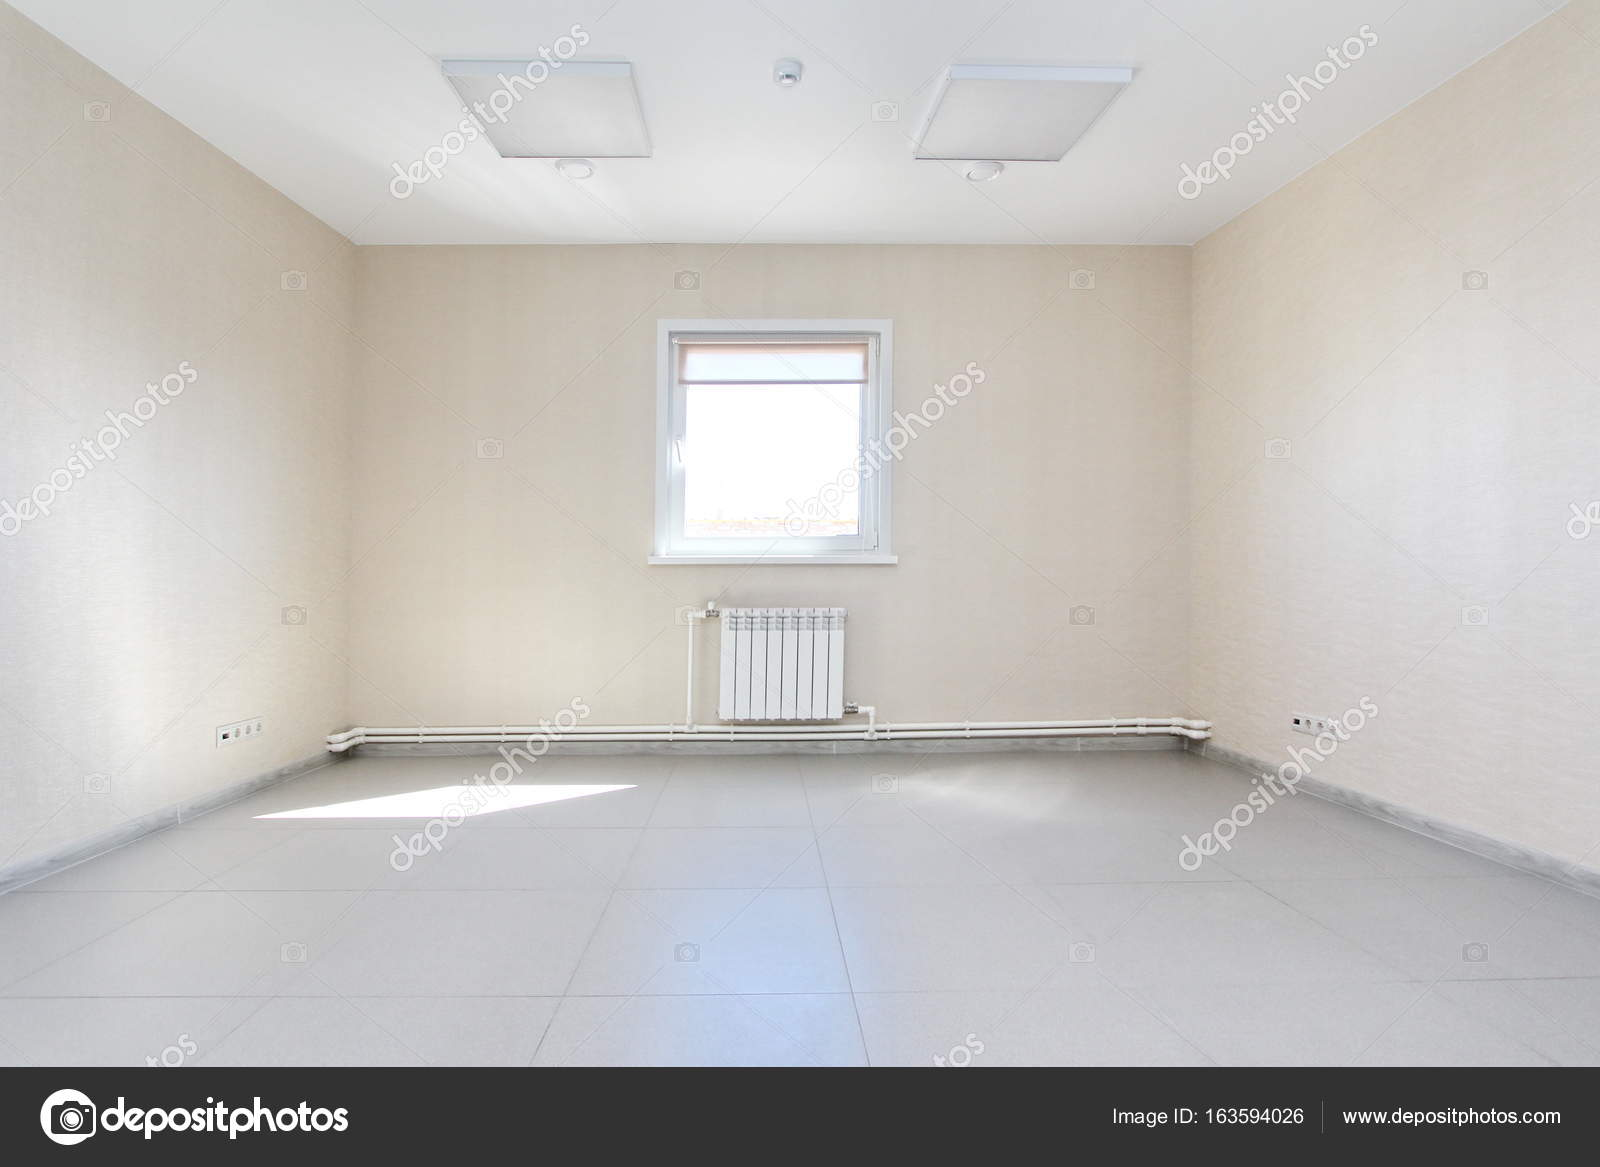 Interior empty office light room with white wallpaper unfurnished in ...